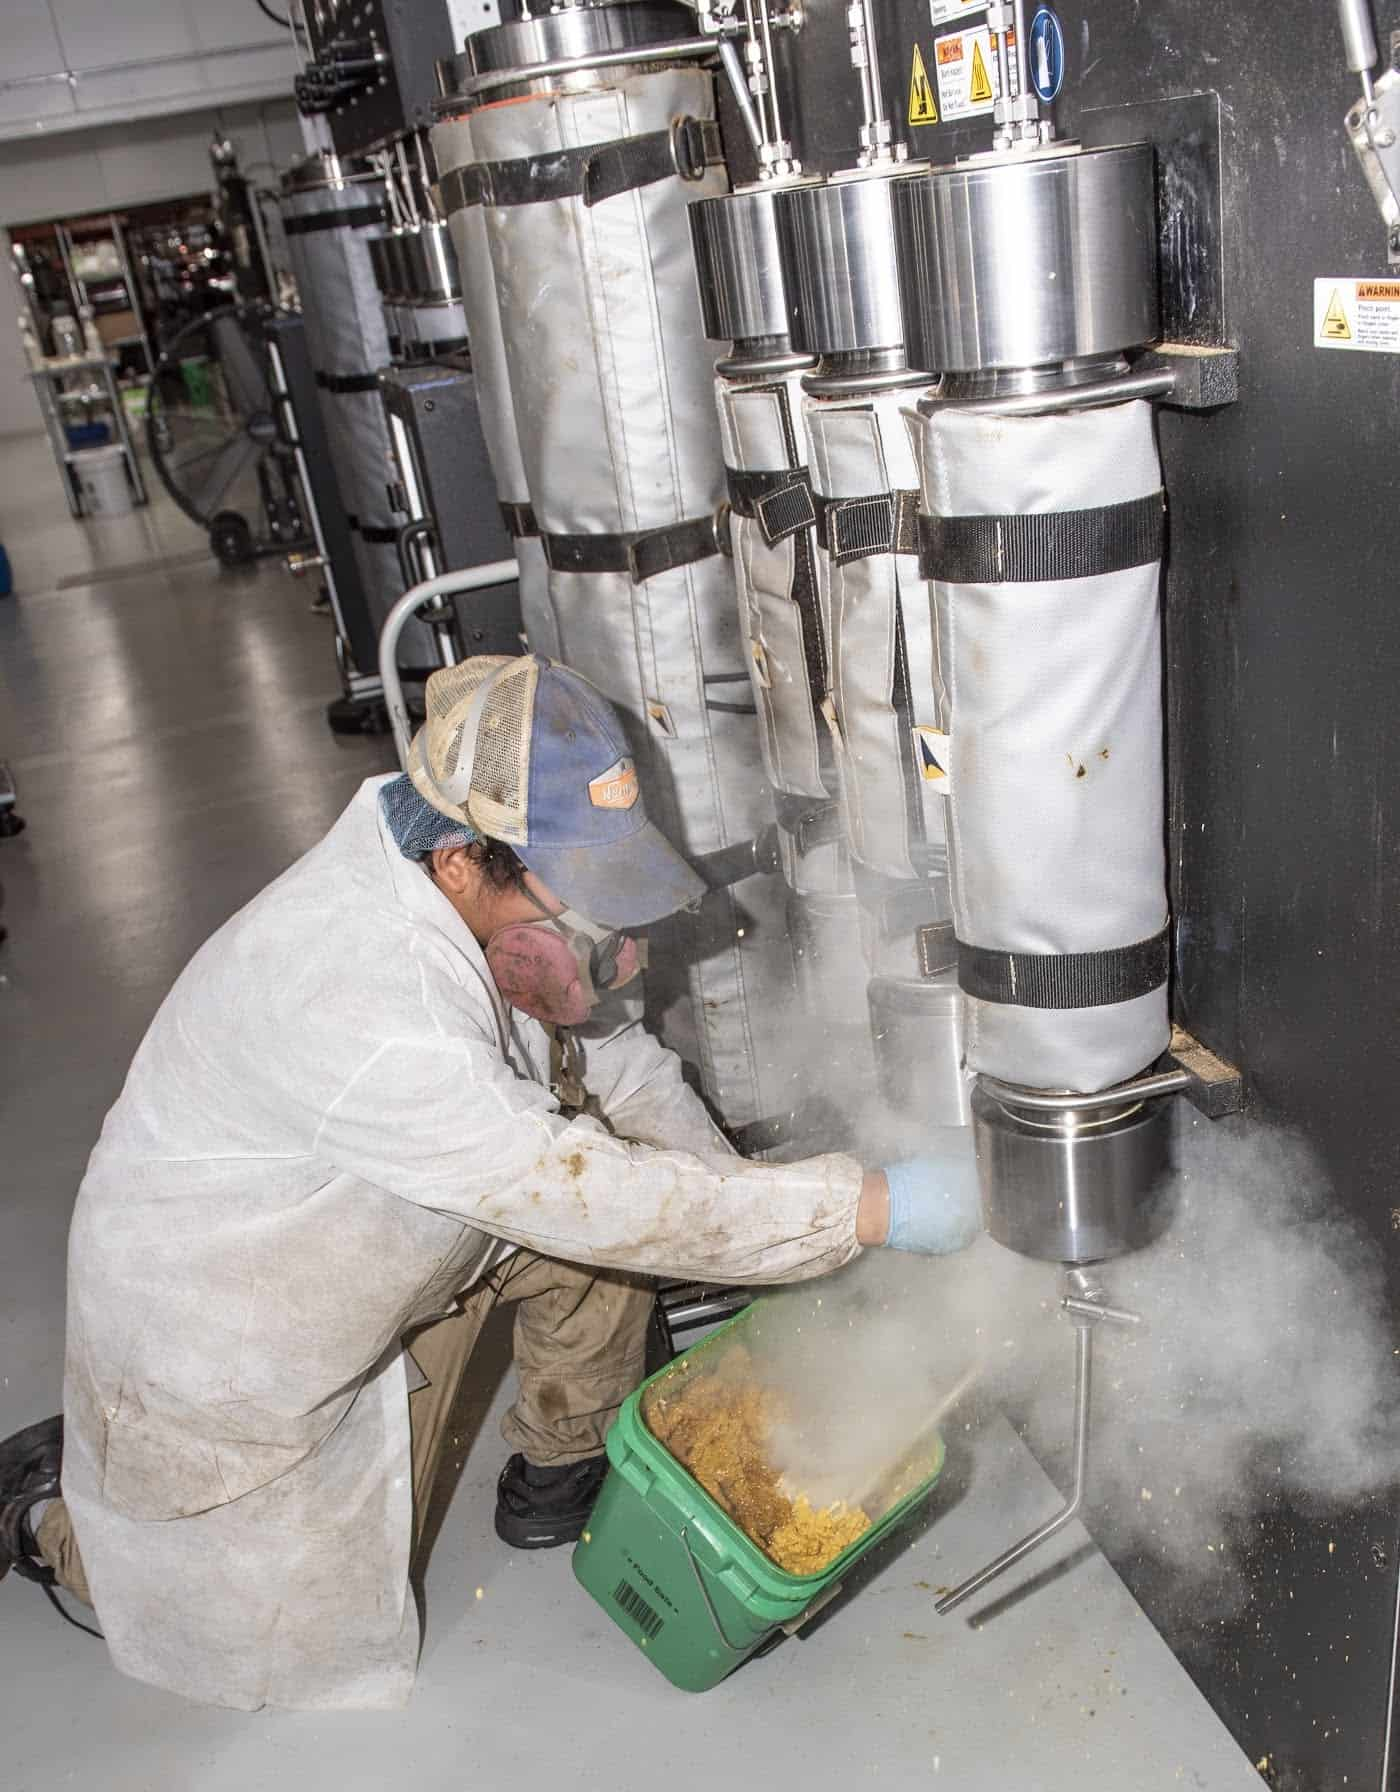 supercritical CO2 extractor being used